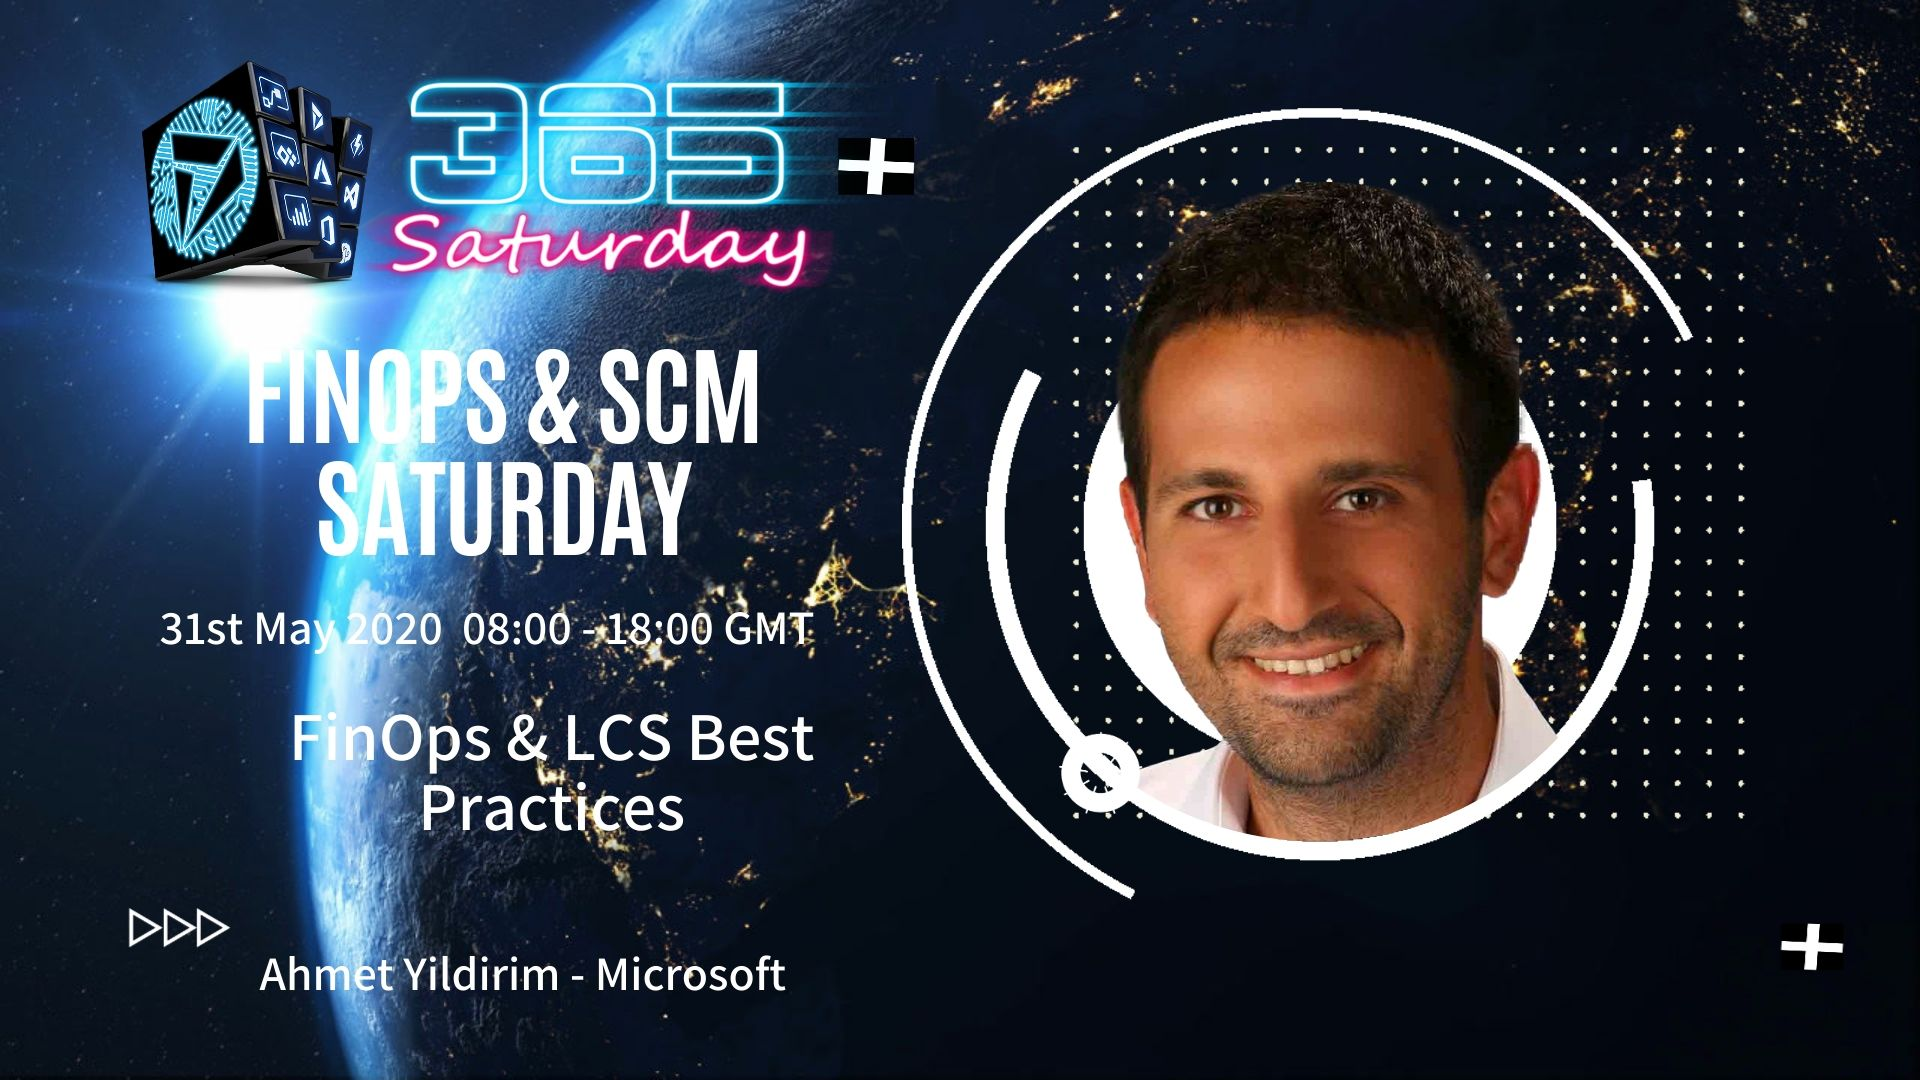 FinOps Saturday - FinOps & LCS Best Practices